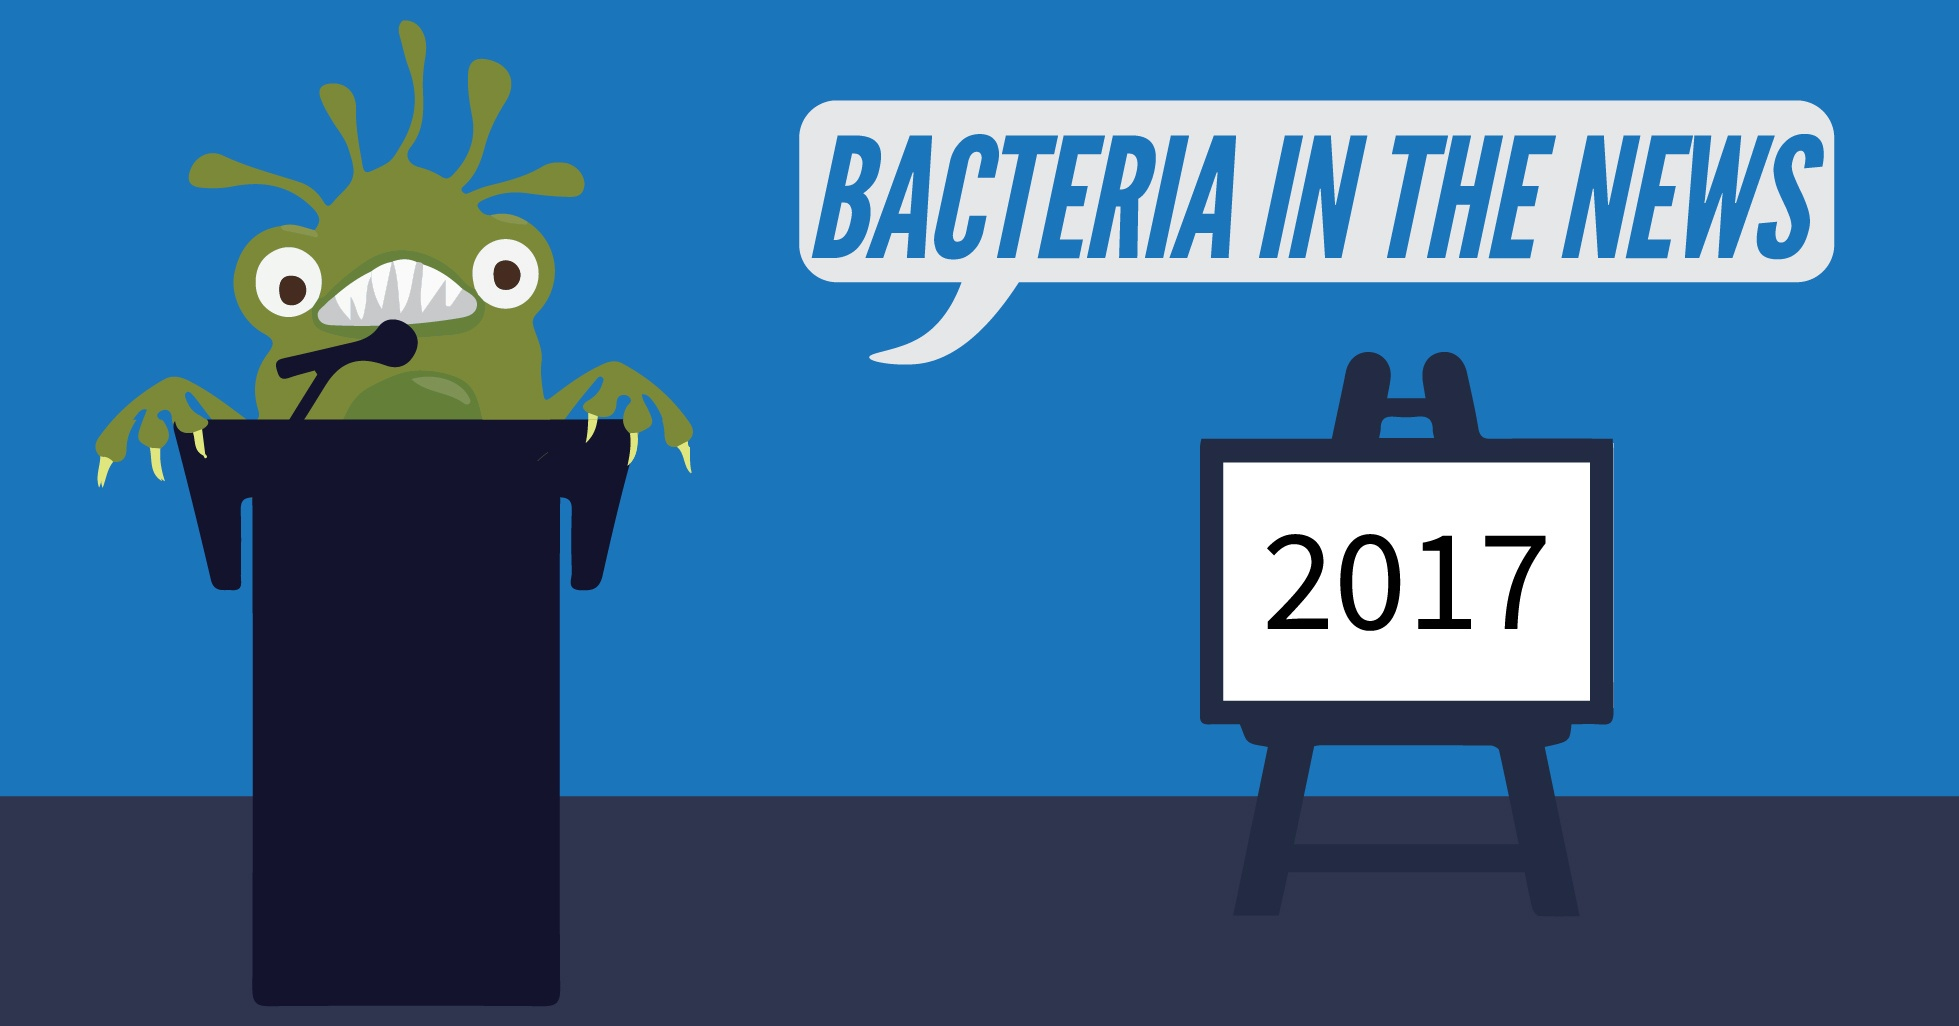 Bacteria in the News-01.jpg